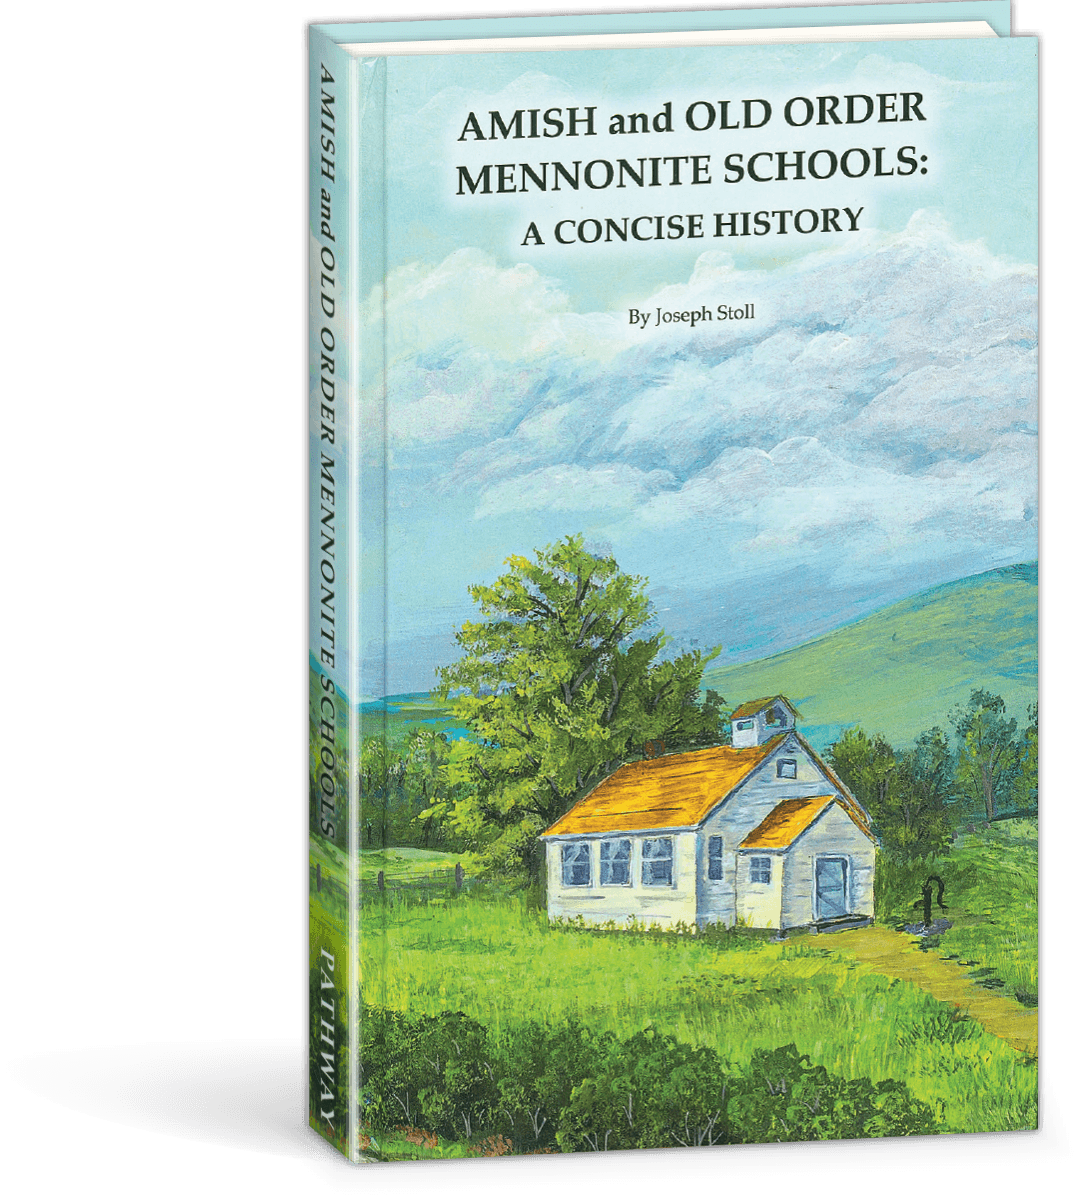 Amish and Old Order Mennonite Schools